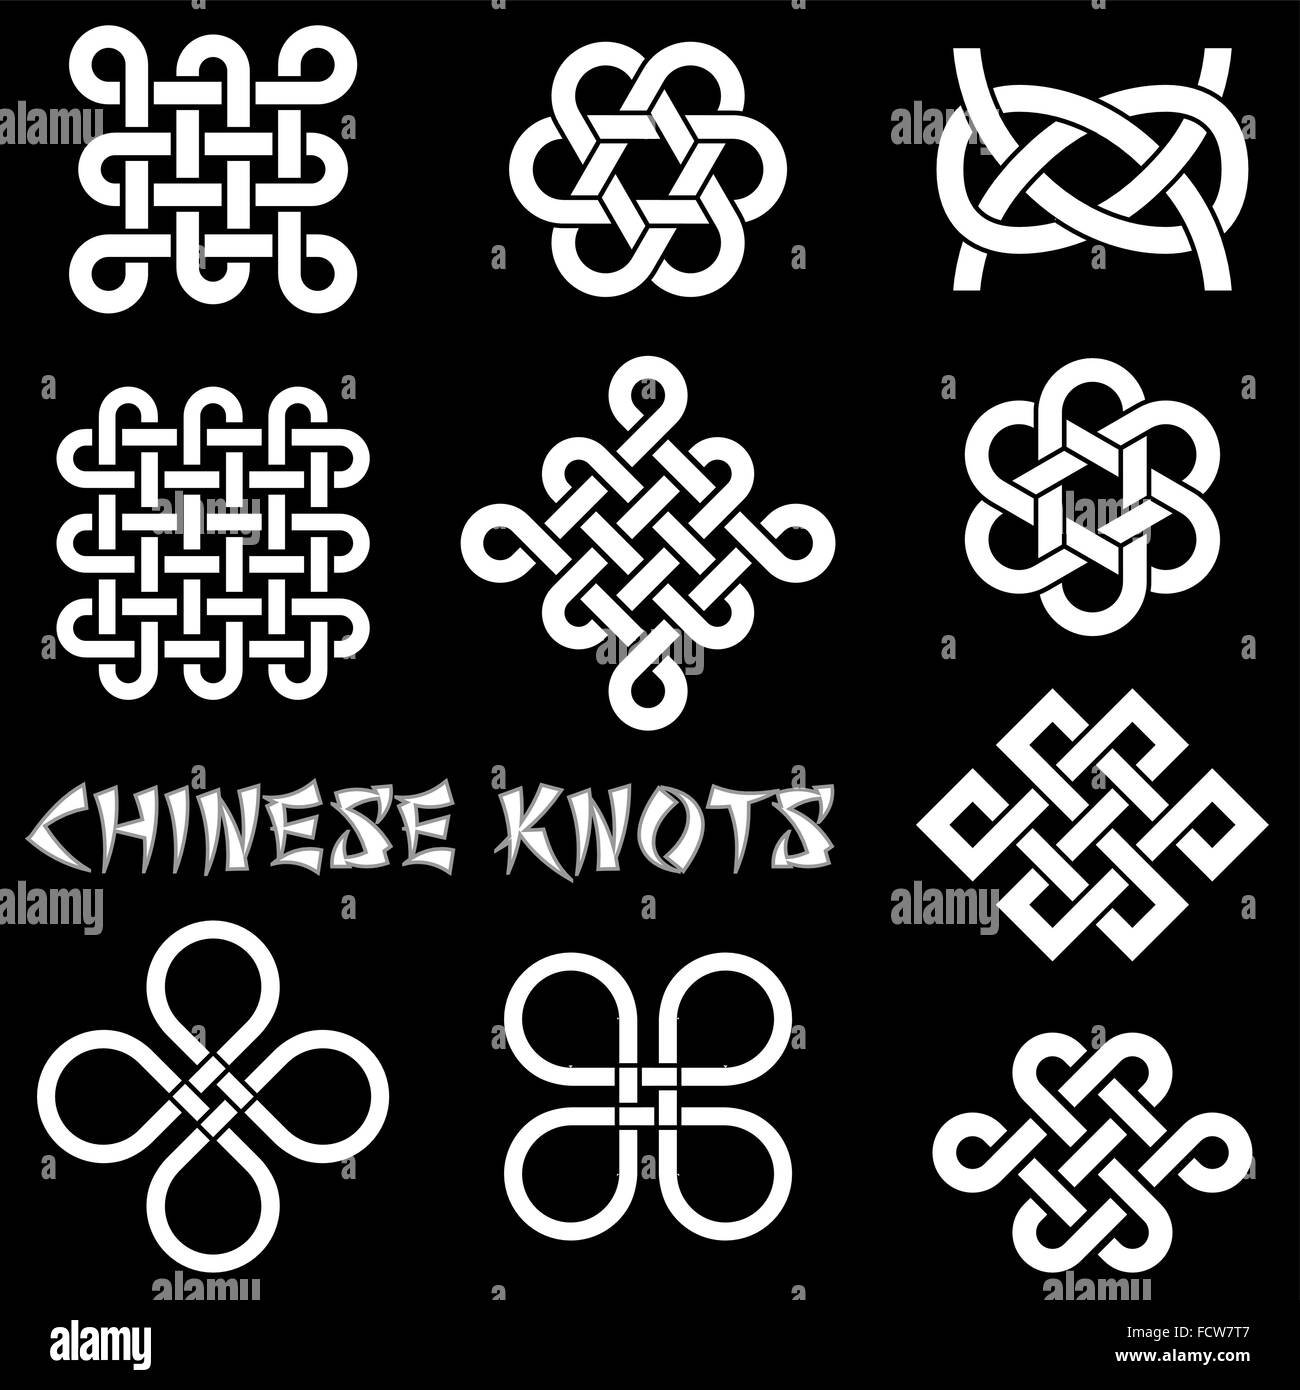 Endless Knot Stock Photos Endless Knot Stock Images Alamy